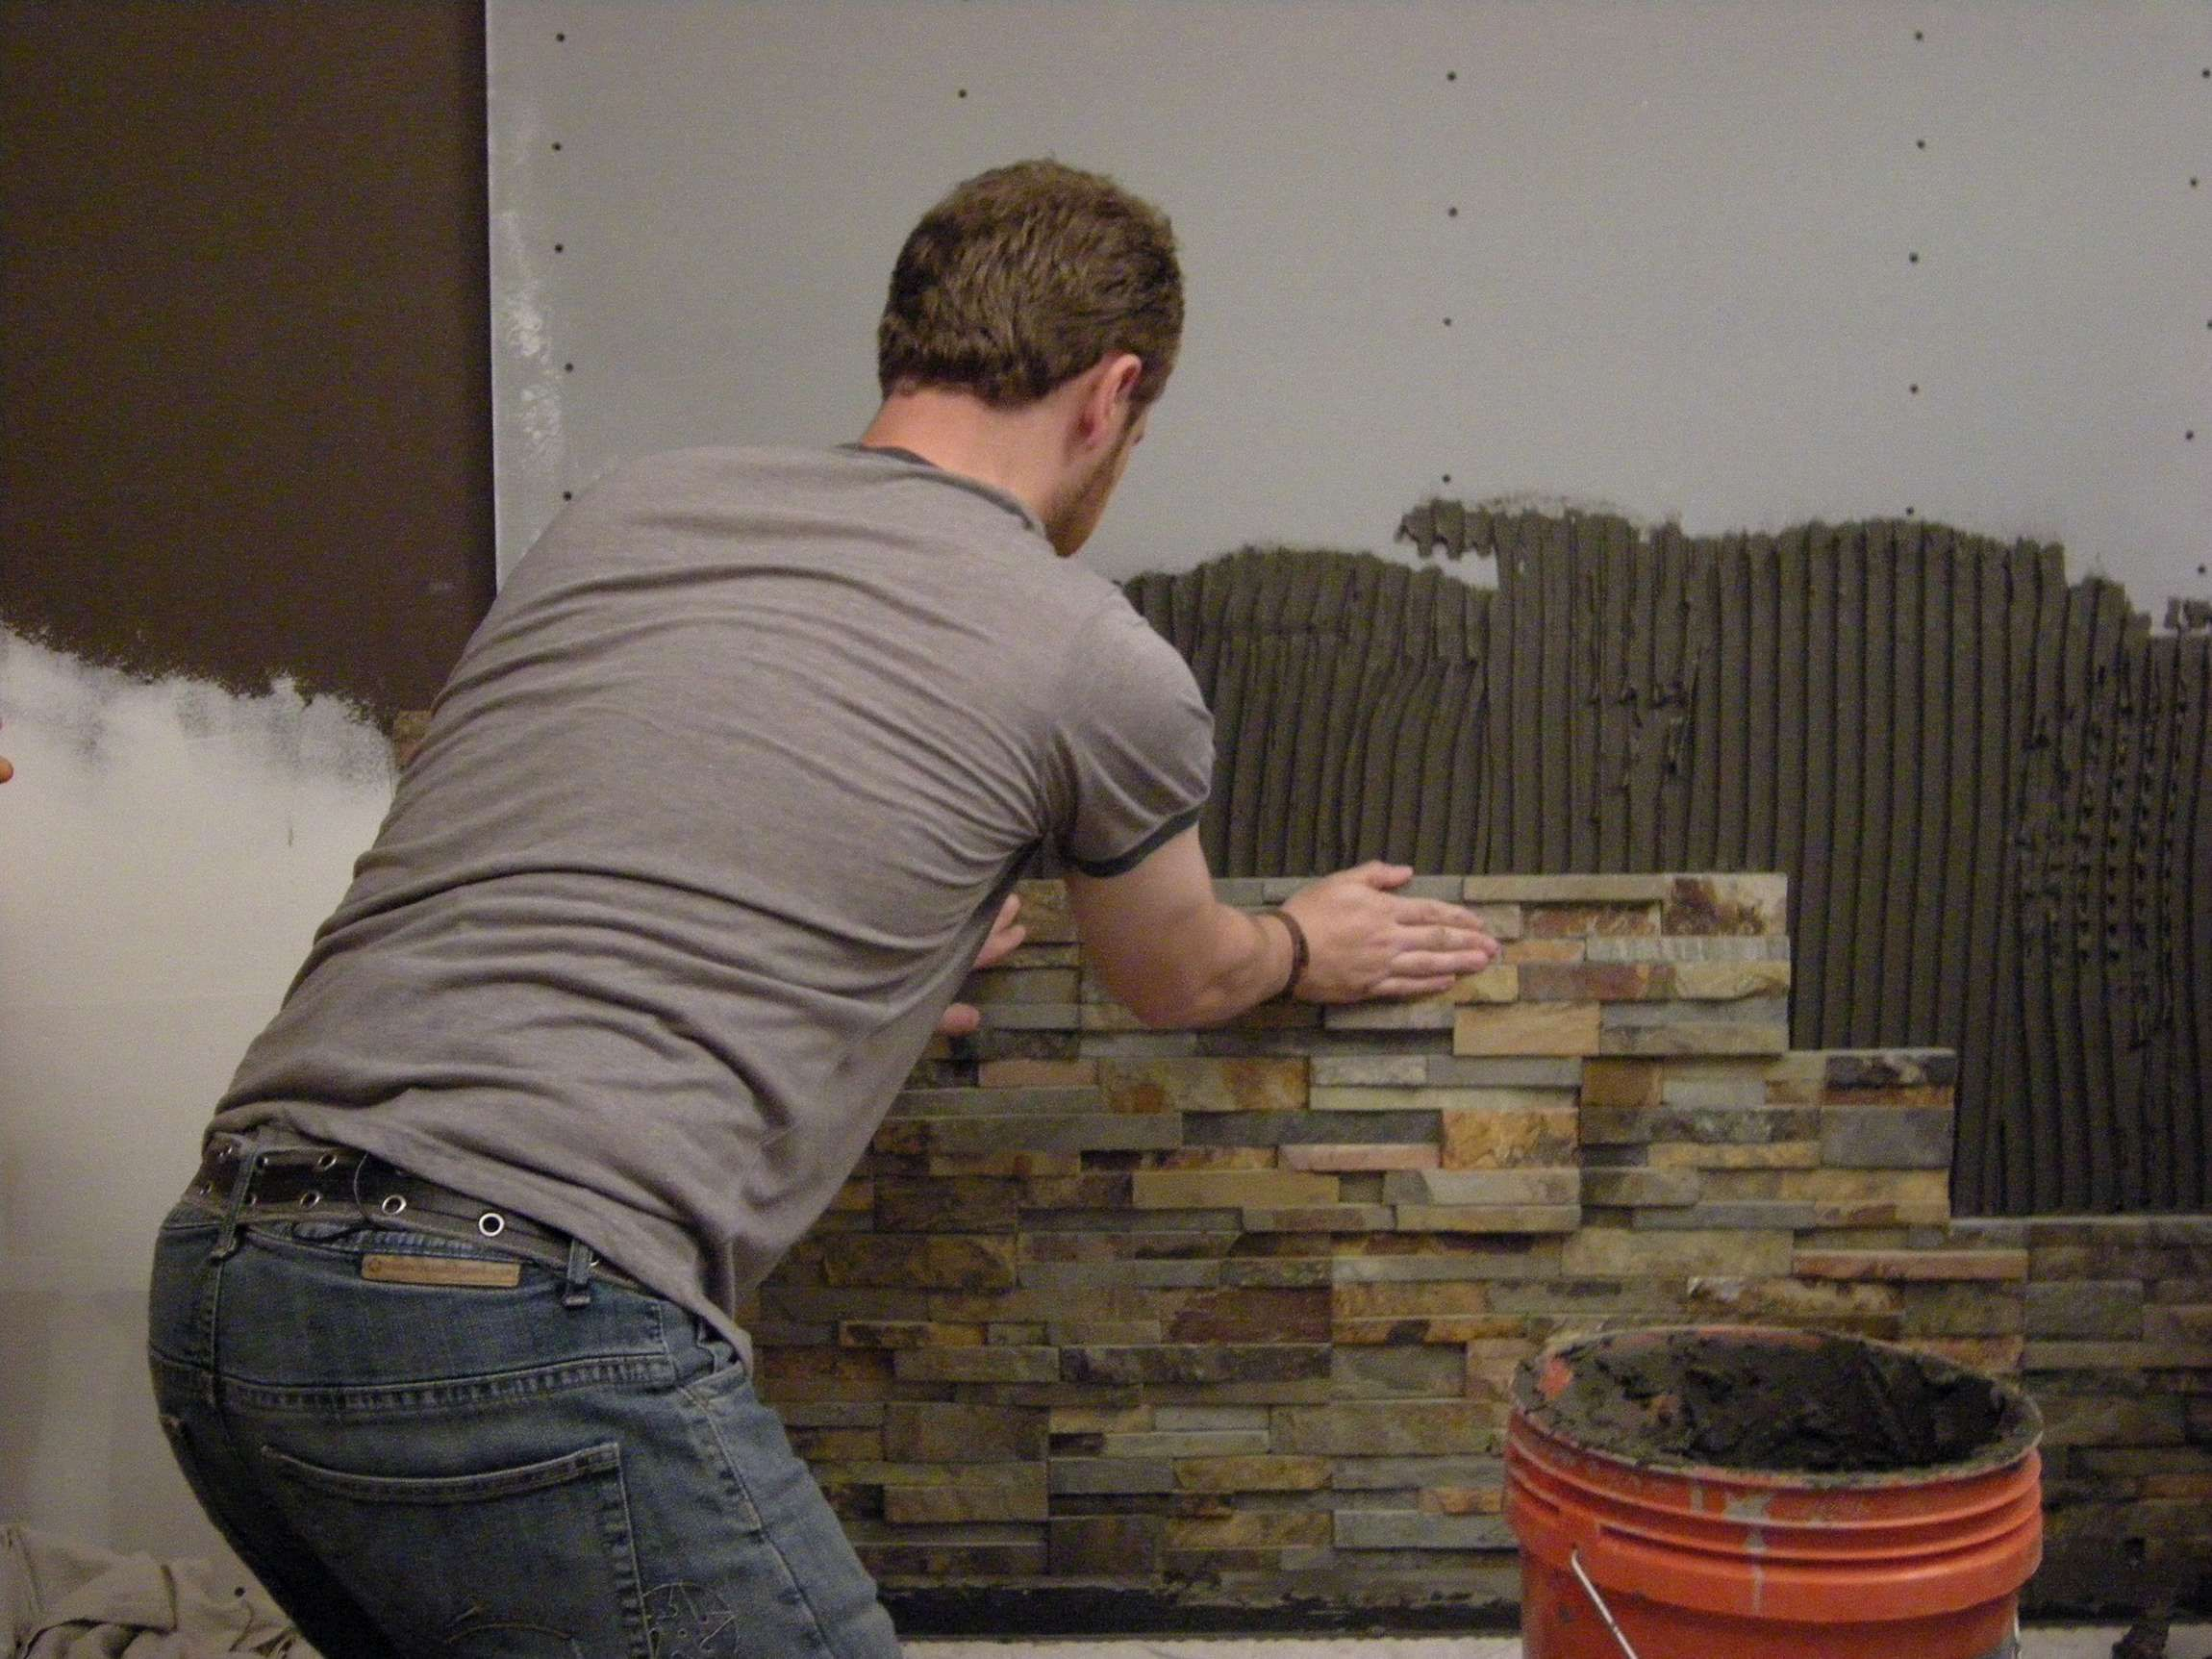 These Are Cool Stone Tiles For Backsplash Window Wells